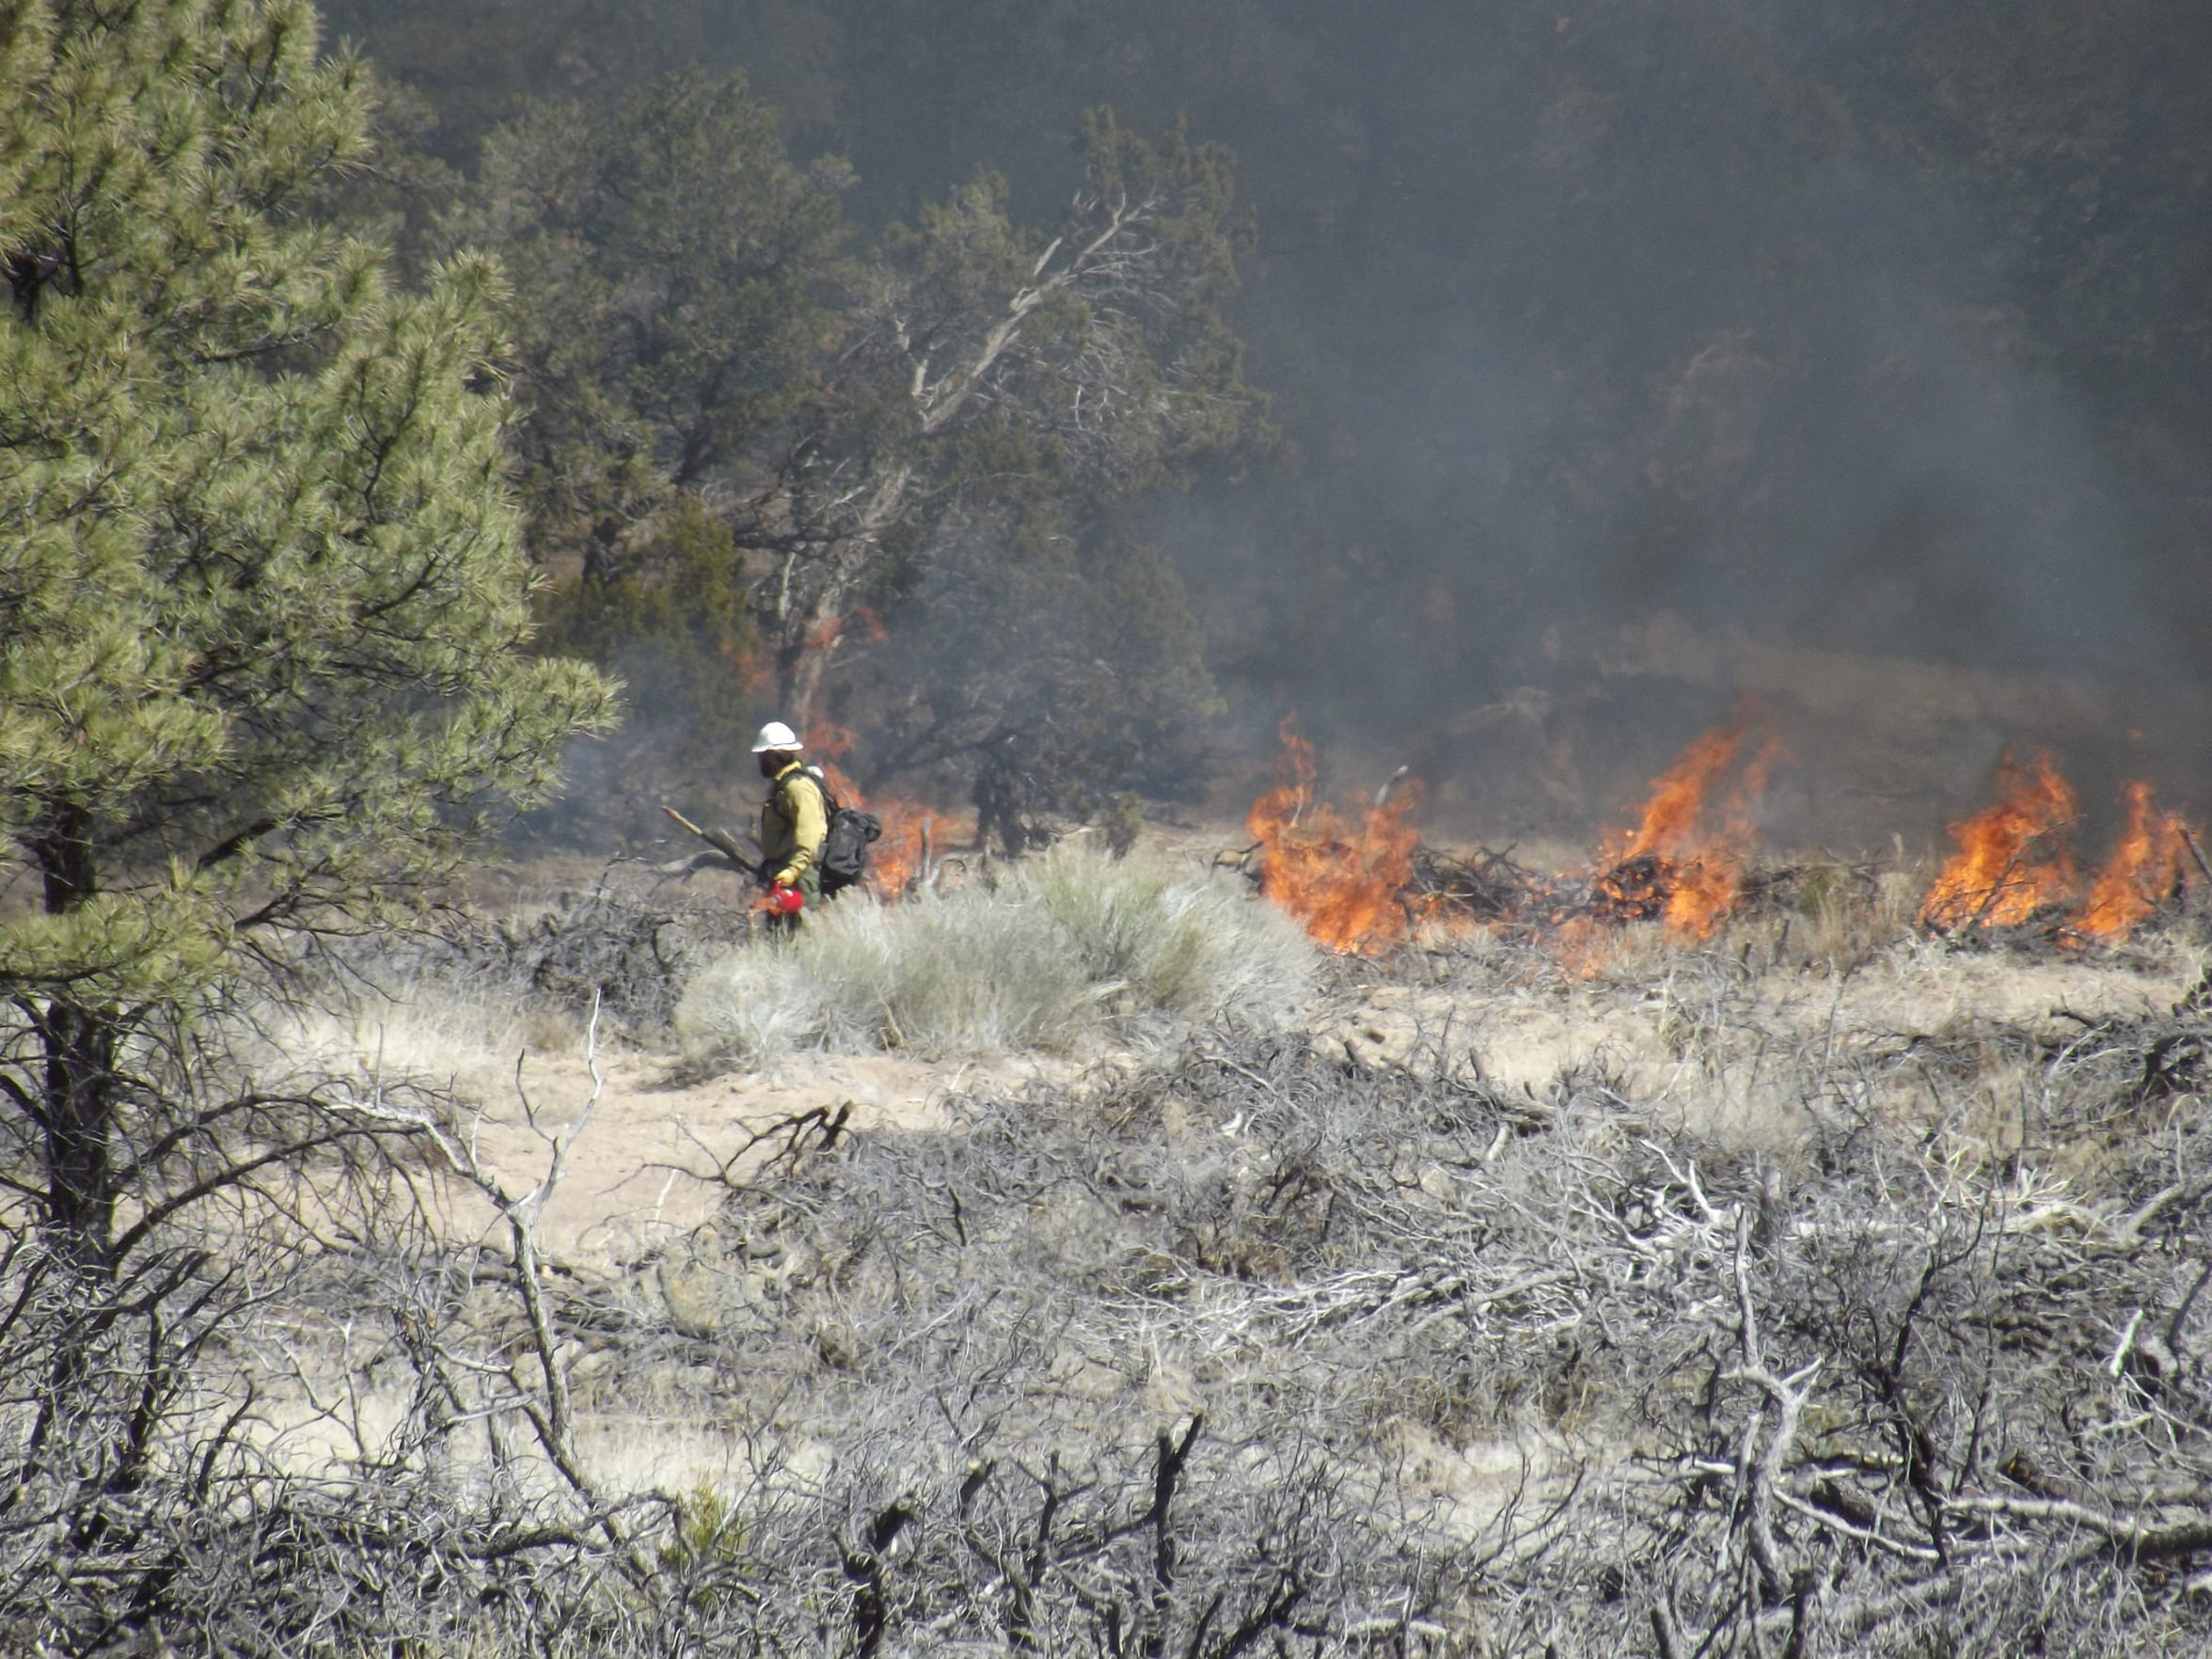 Prescribed Fire on Slaughter Mesa in Gila National Forest